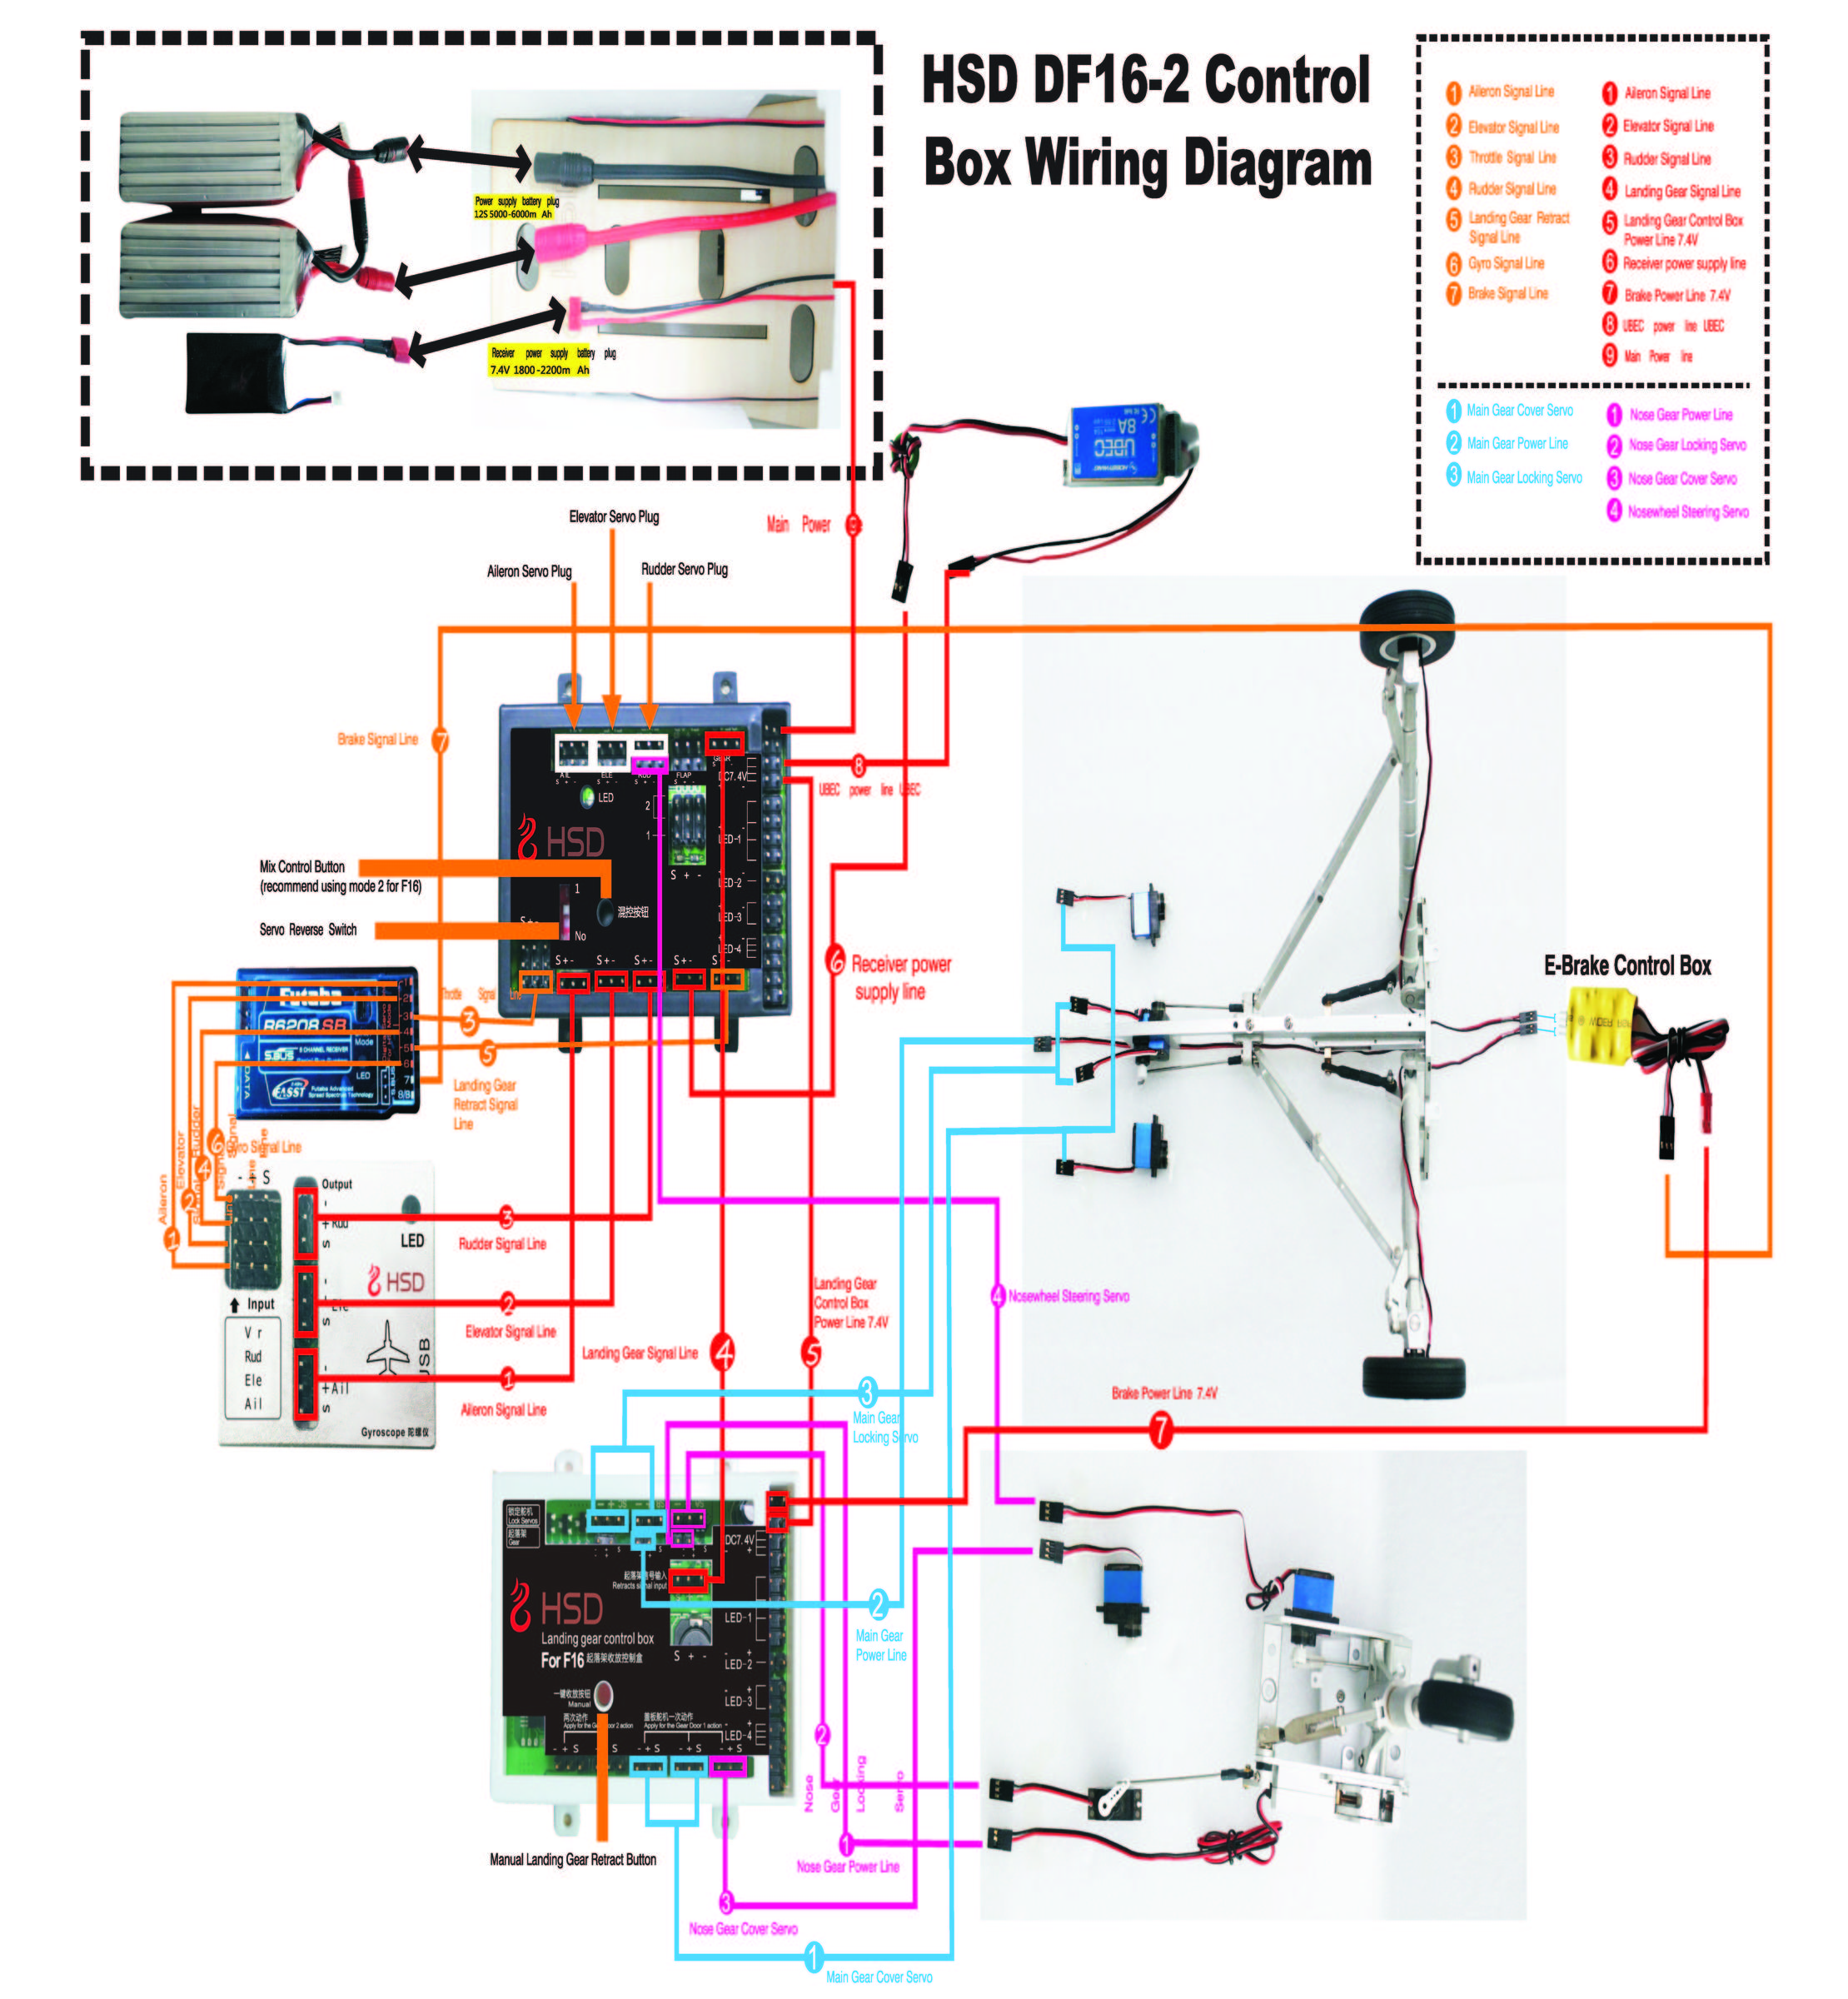 X8 Motor Wiring Diagram | New Wiring Resources 2019 on